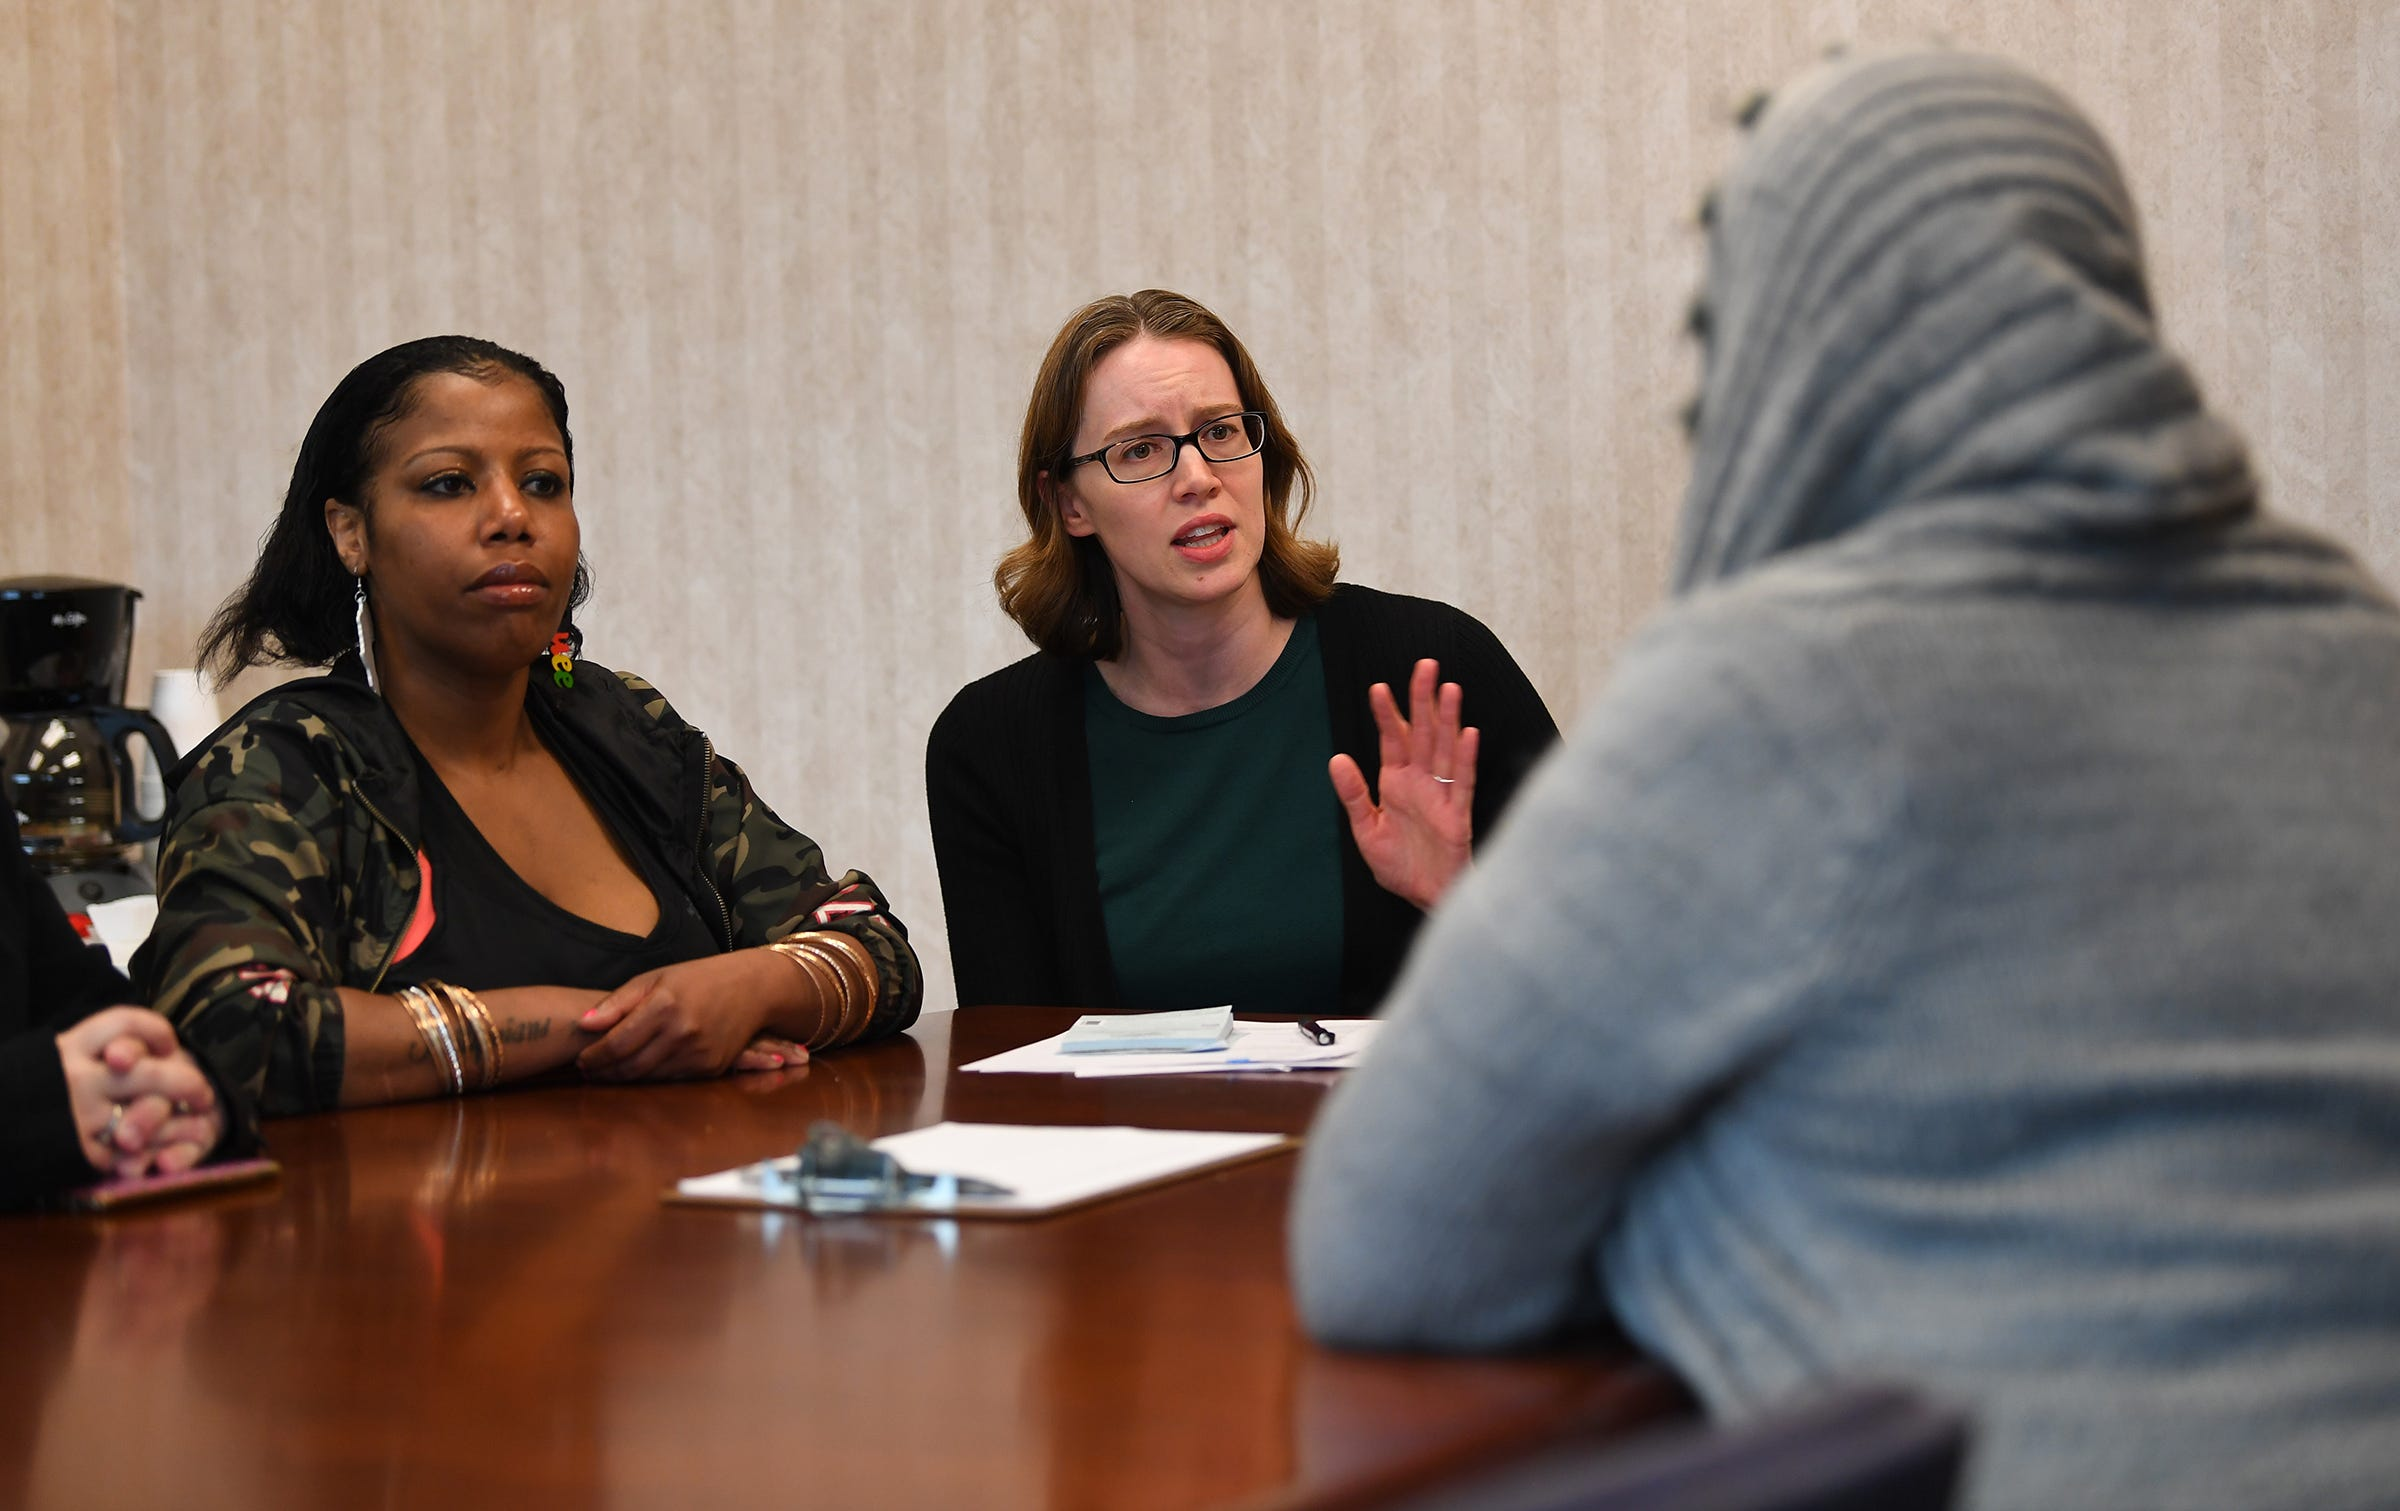 Dr. Erin Zerbo, center, assistant professor in the department of psychiatry at Rutgers New Jersey Medical School, talks with a group of patients, including Cydiaa Williams at left.